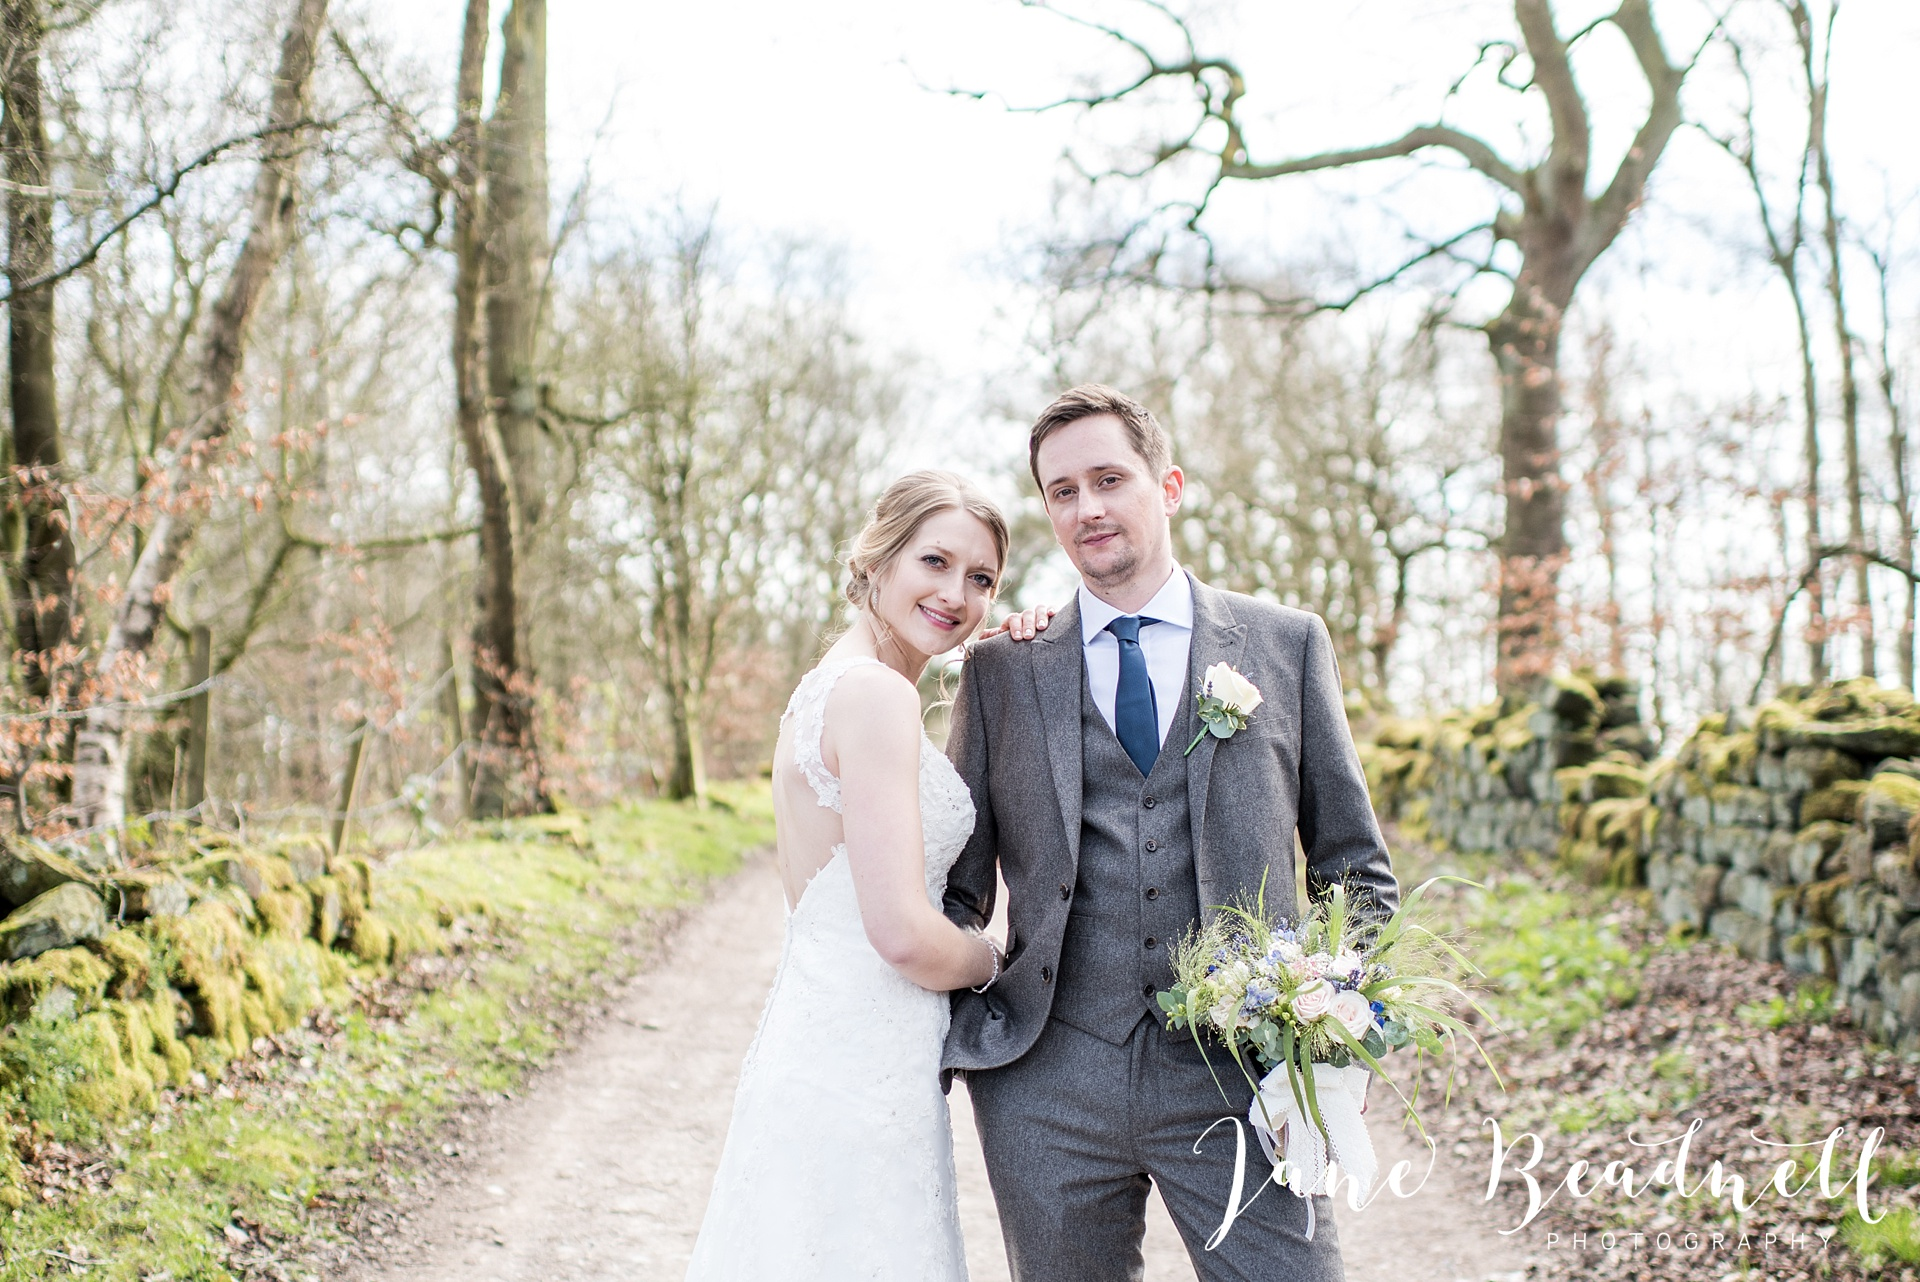 Otley Chevin Lodge wedding photography by Jane Beadnell Photography Leeds_0113